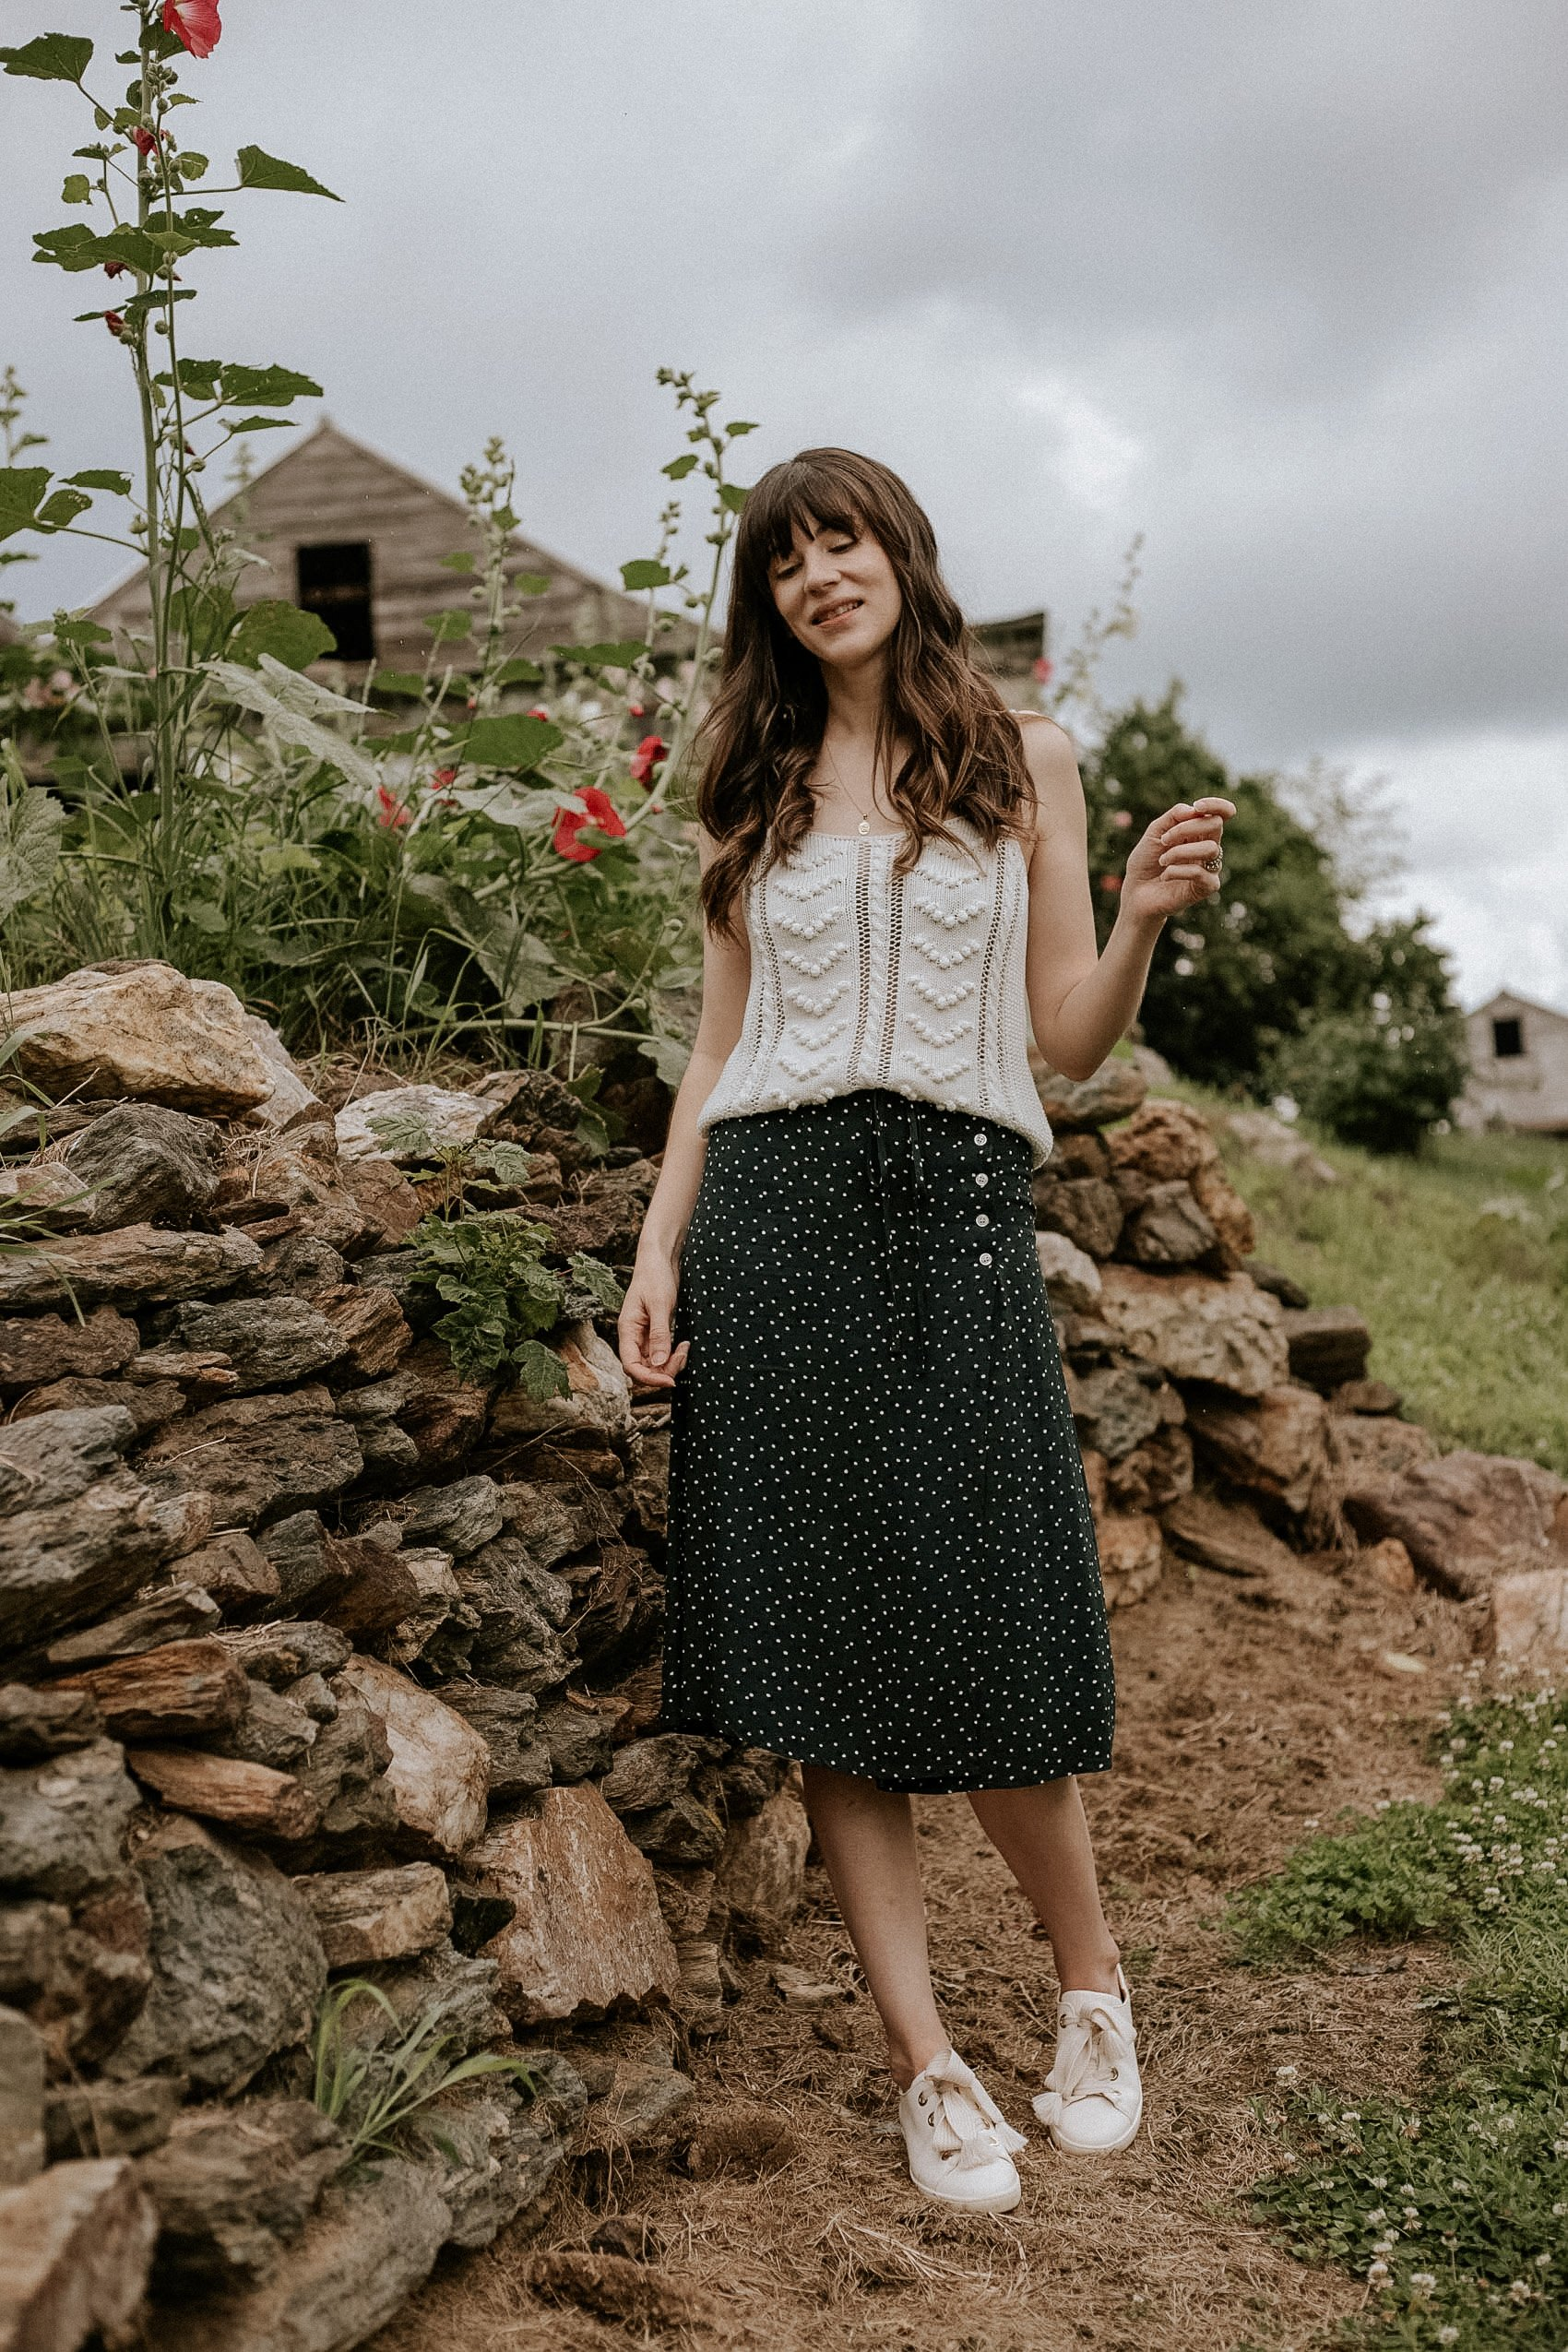 """""""Dressed up"""" casual summer outfit ft. french fashion brands Rouje and Sezane on woman standing next to a stone wall"""